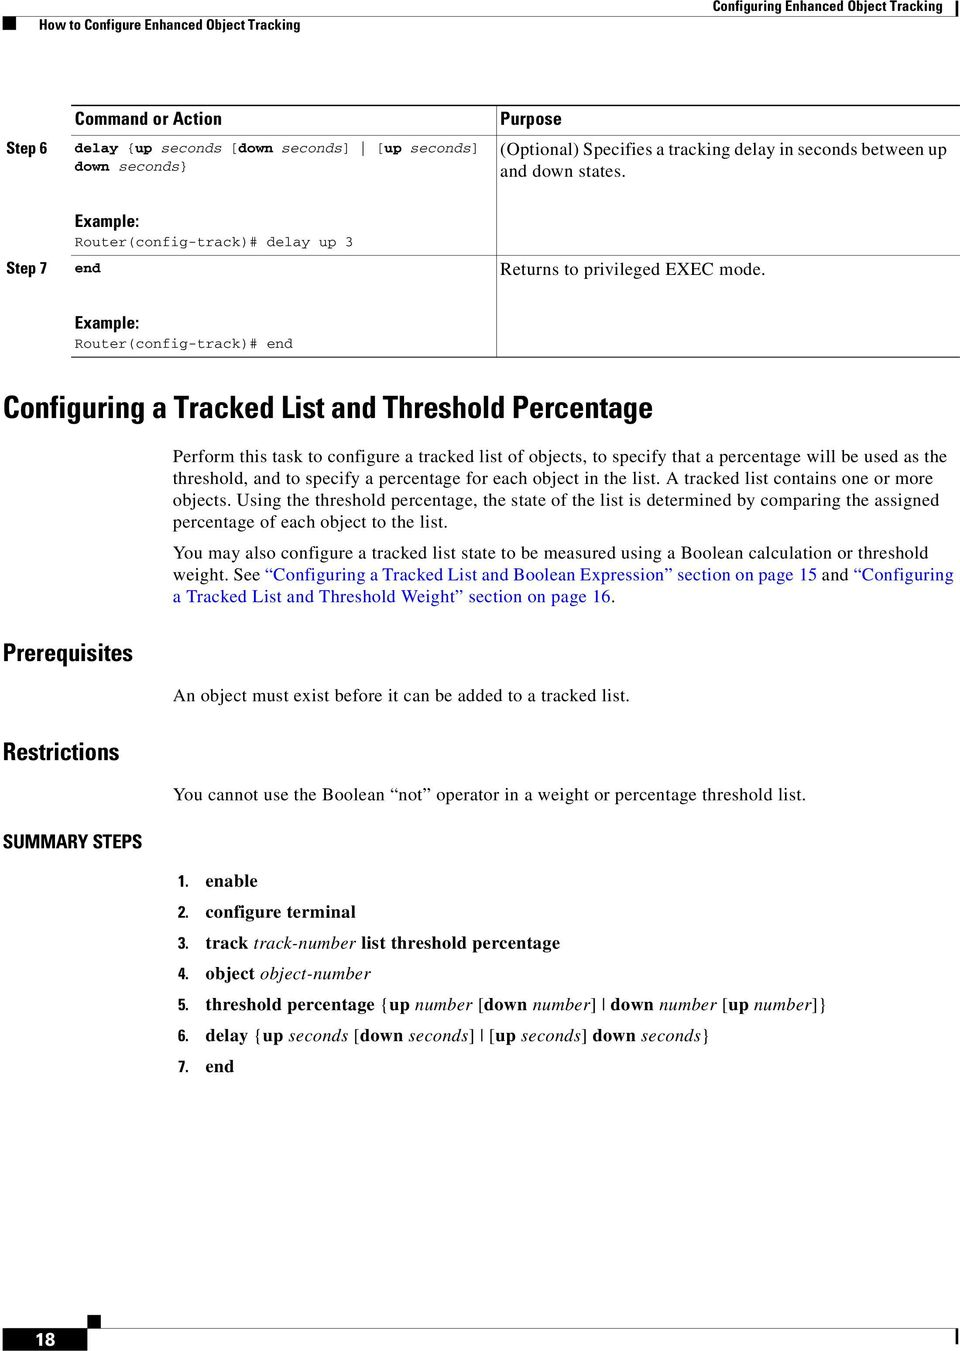 Router(config-track)# end Configuring a Tracked List and Threshold Percentage Prerequisites Perform this task to configure a tracked list of objects, to specify that a percentage will be used as the